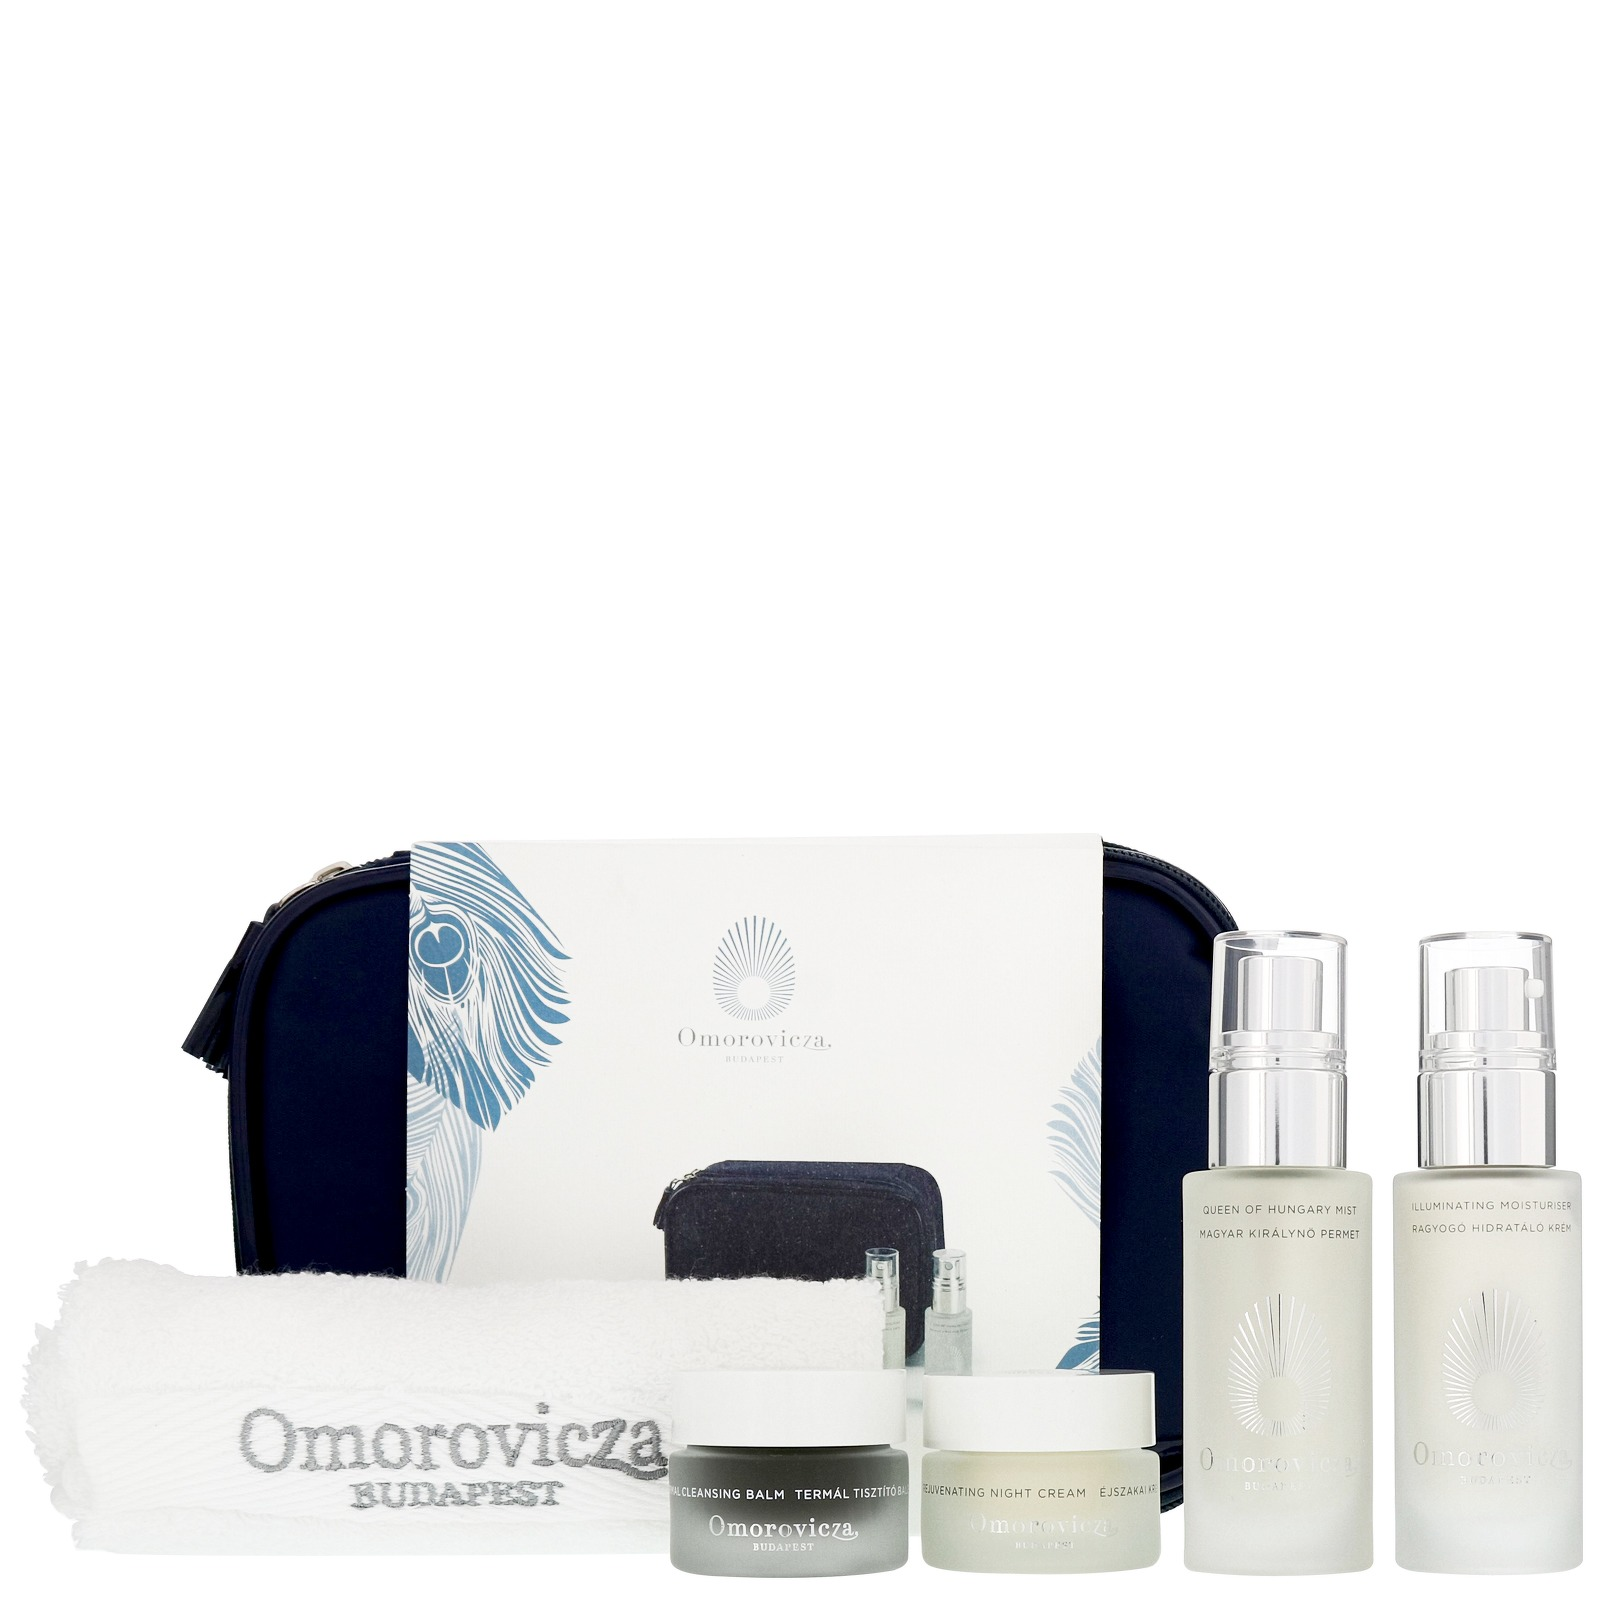 Omorovicza Budapest Sets Omorovicza Essentials Set